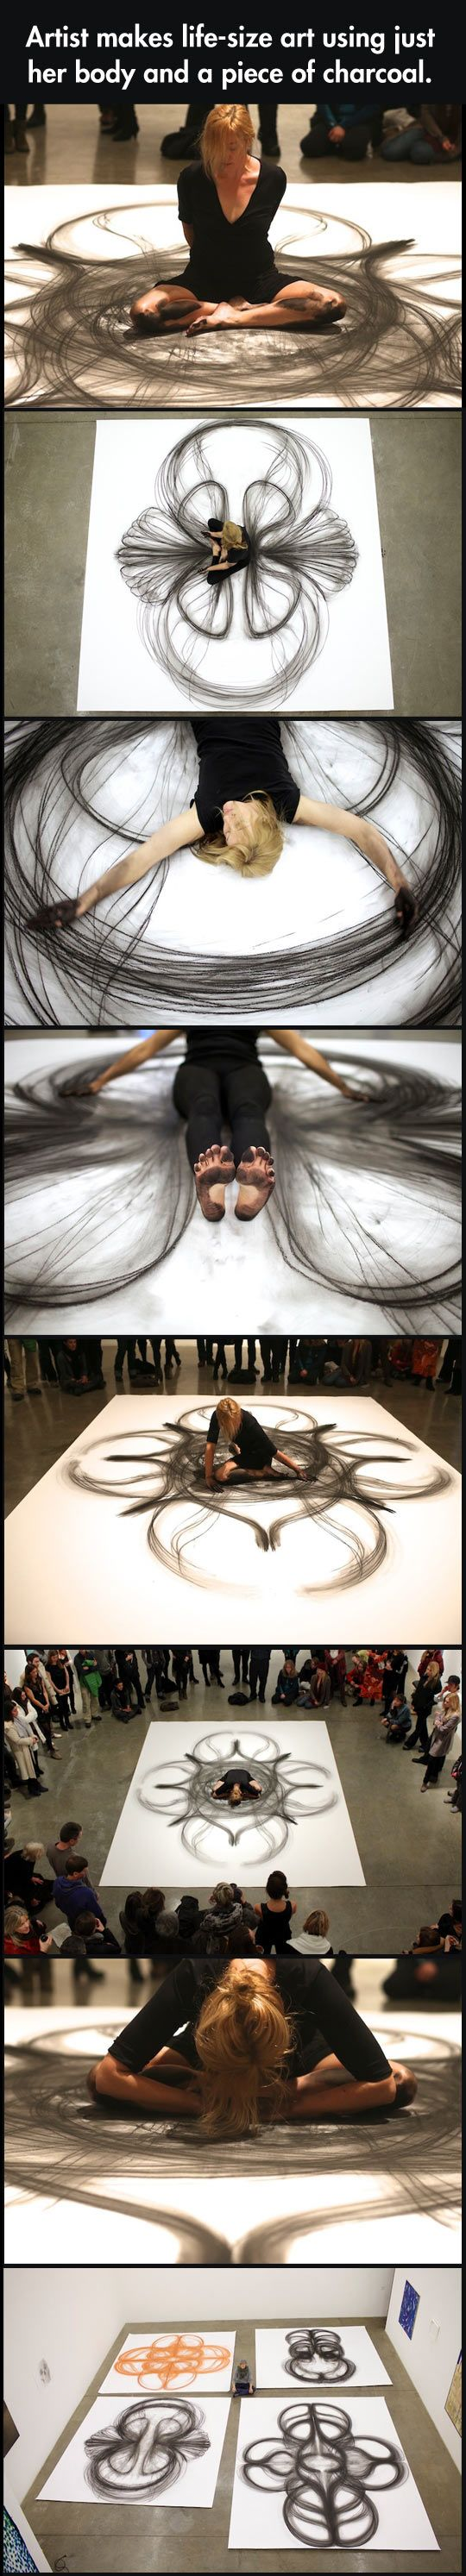 Mal - the human Spirograph which an artist used her own body with charcoal to create interesting shapes